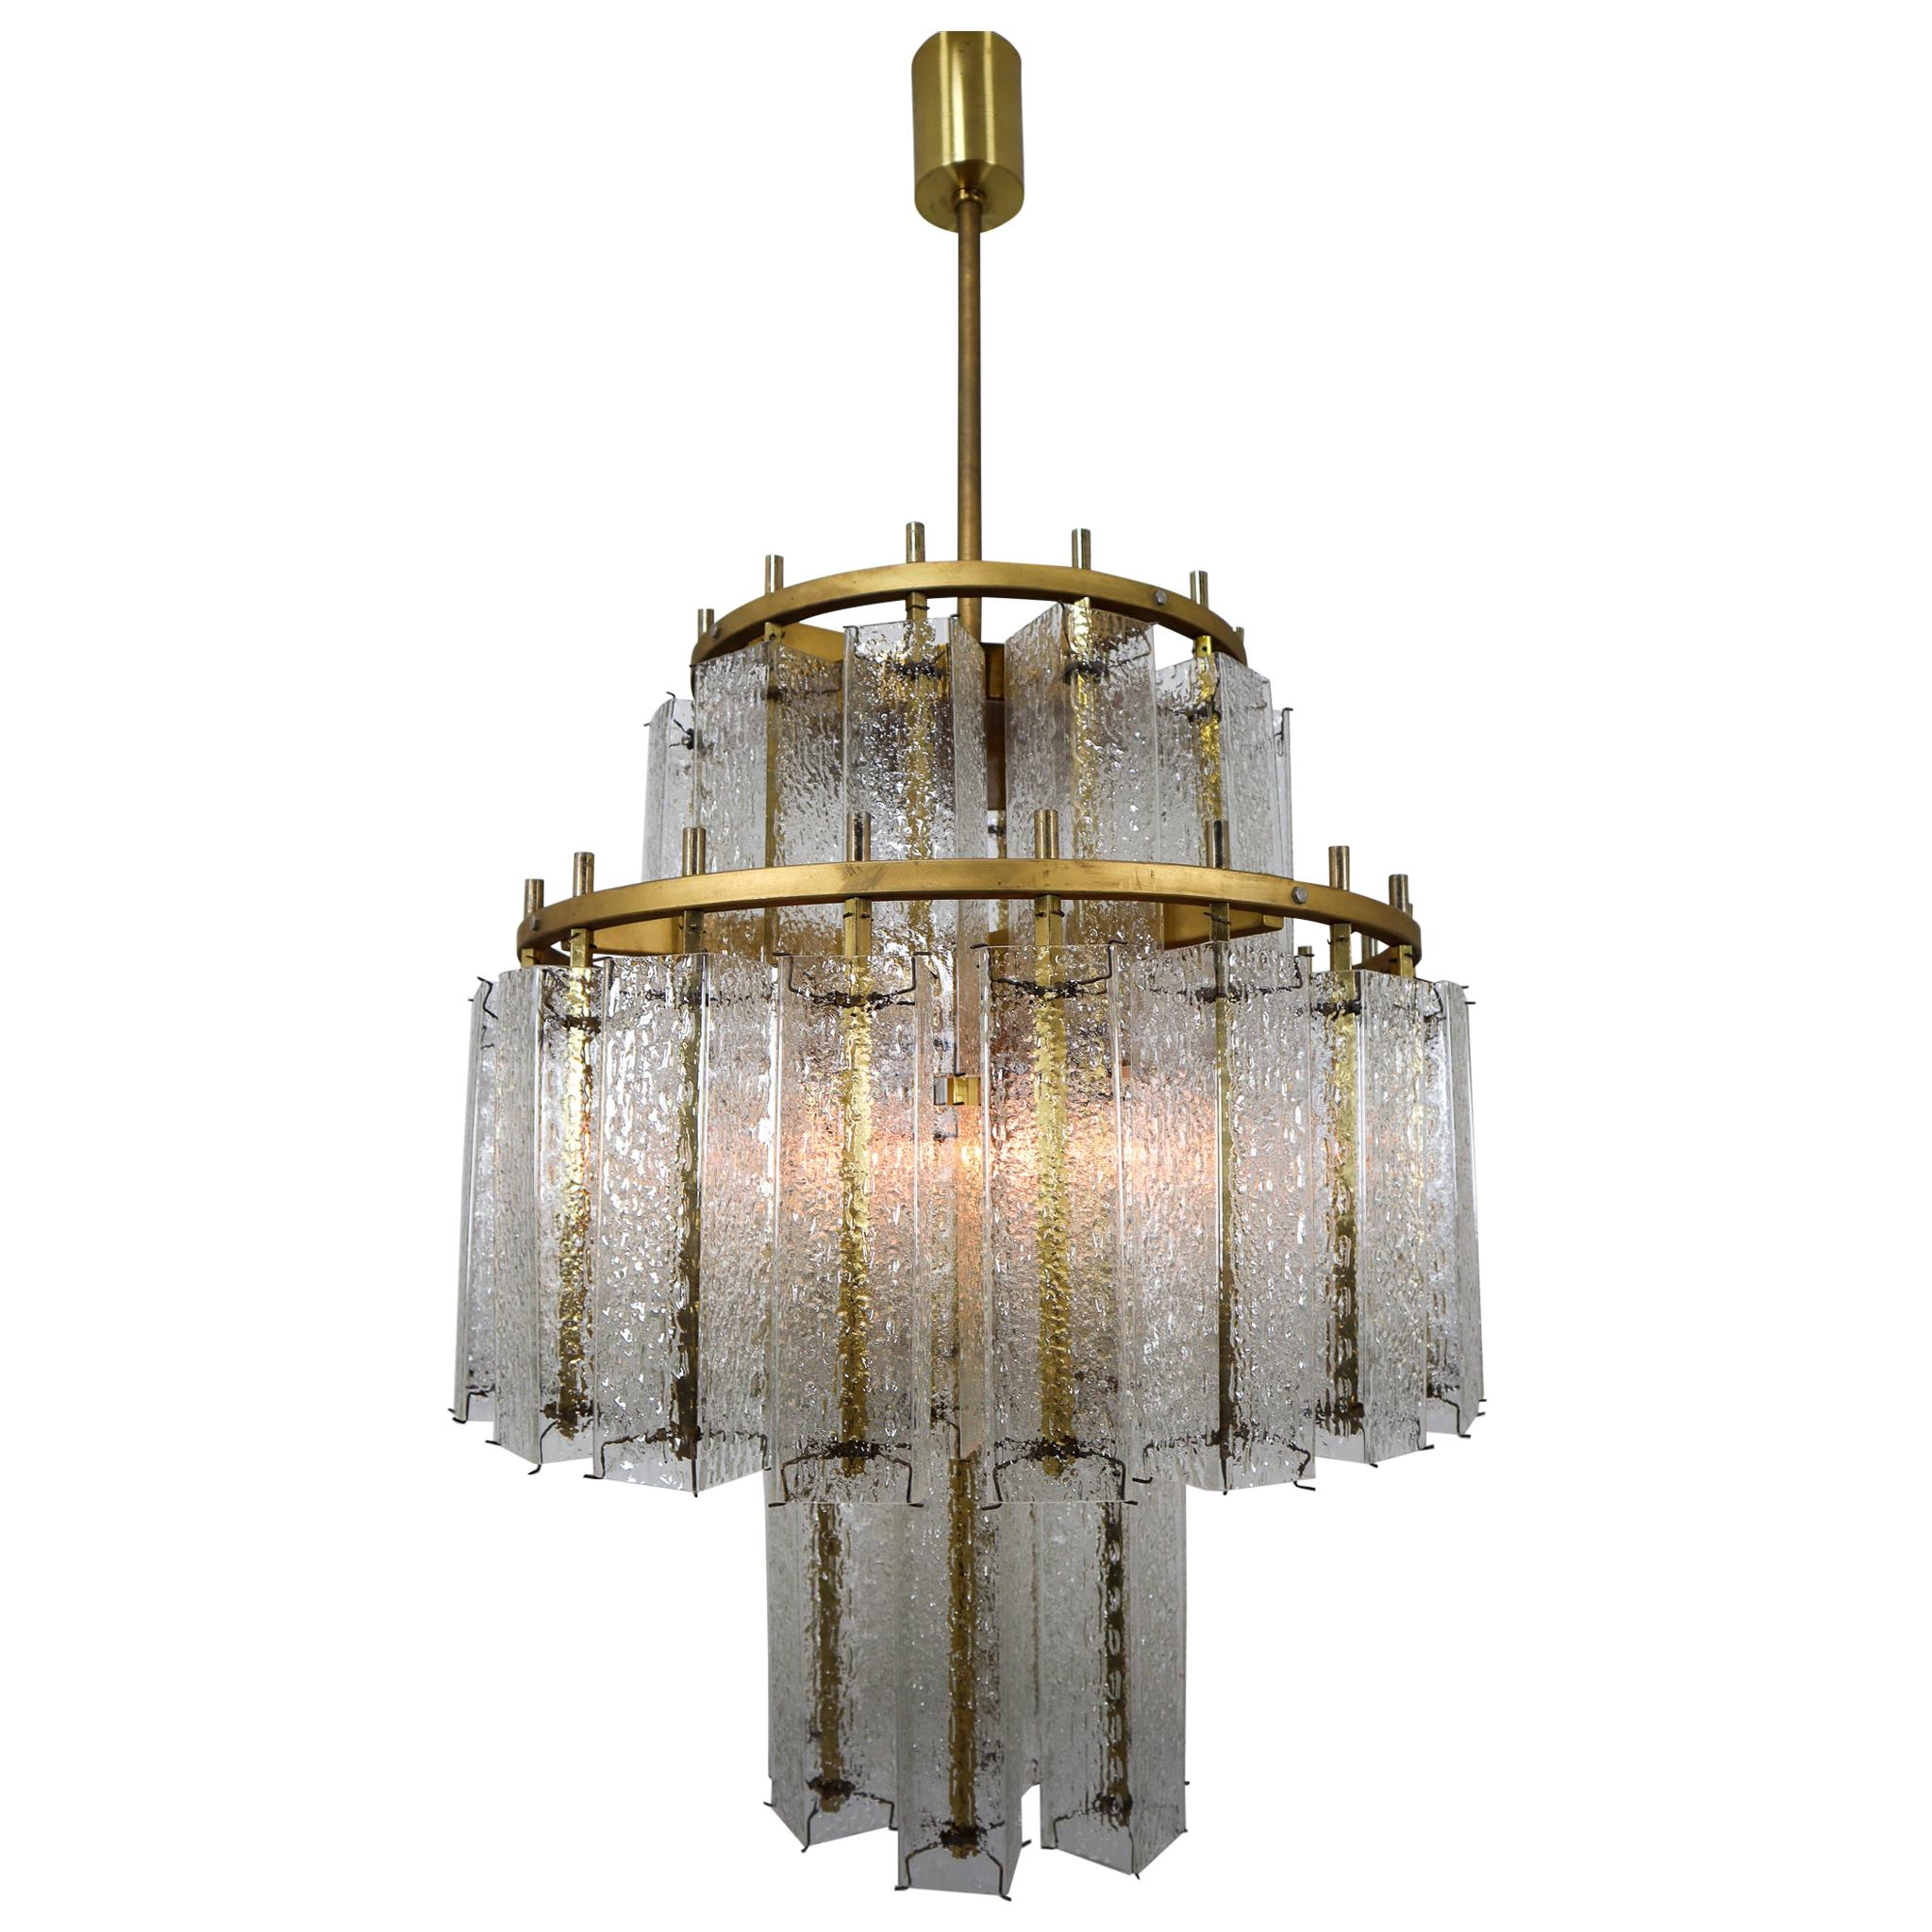 Large Midcentury Chandeliers in Brass and Structured Ice Glass, Austria, 1960s